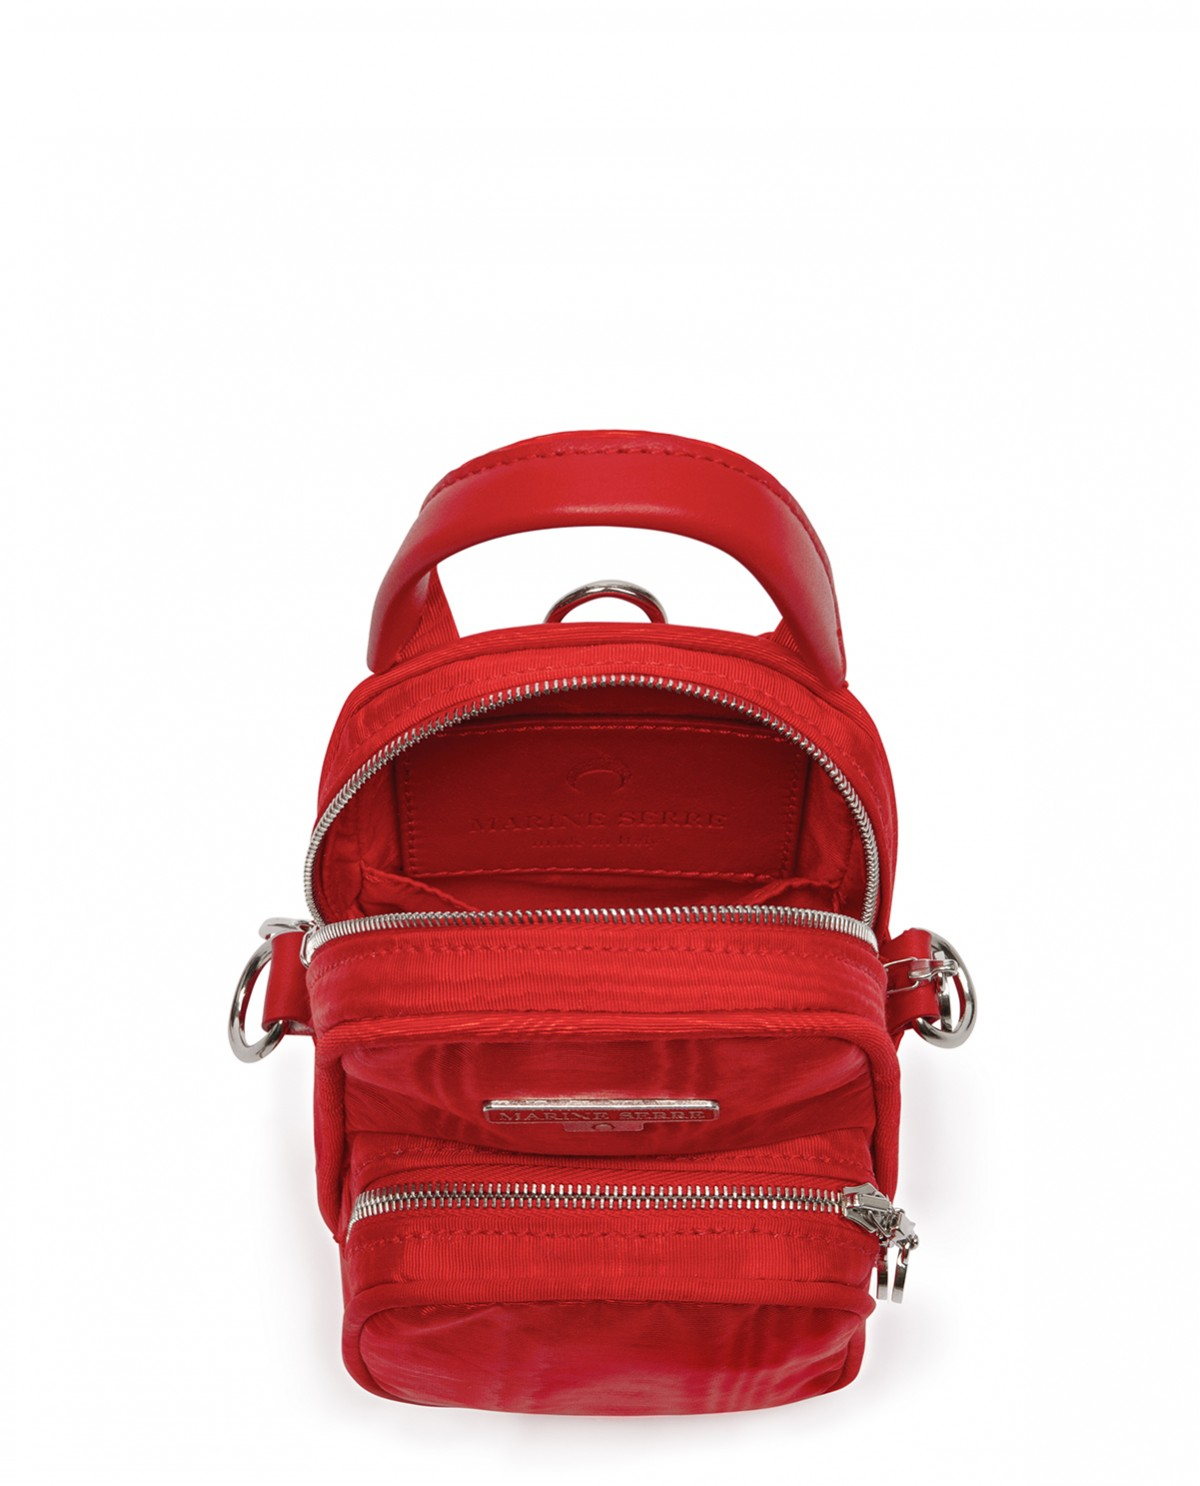 Marine Serre red mini pocket bag